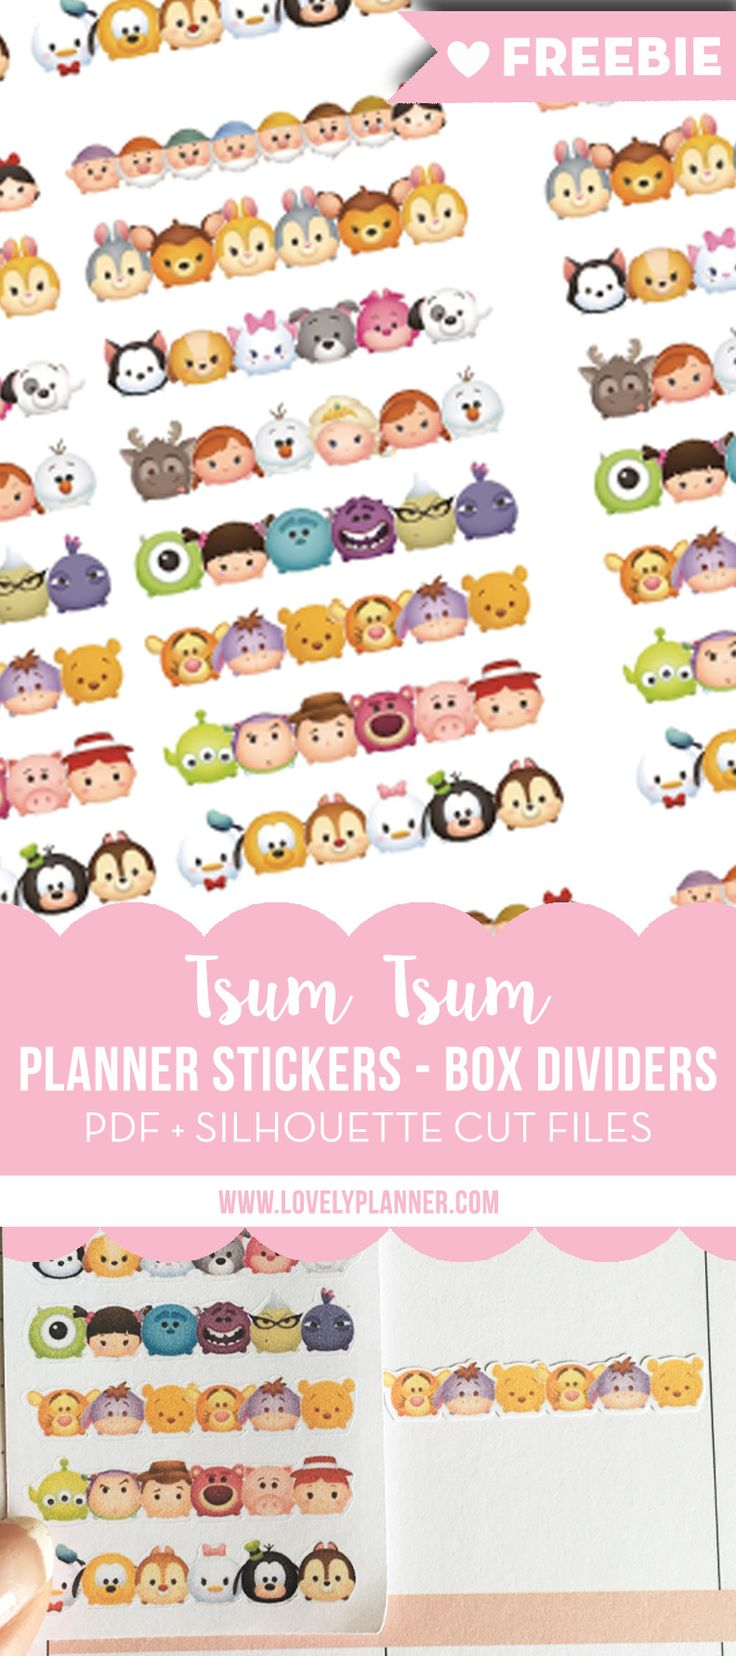 Free printable Tsum Tsum box dividers stickers for your planner (Happy Planner, Erin Condren Life Planner...): PDF & Silhouette cut files included. More planner freebies on LovelyPlanner.com